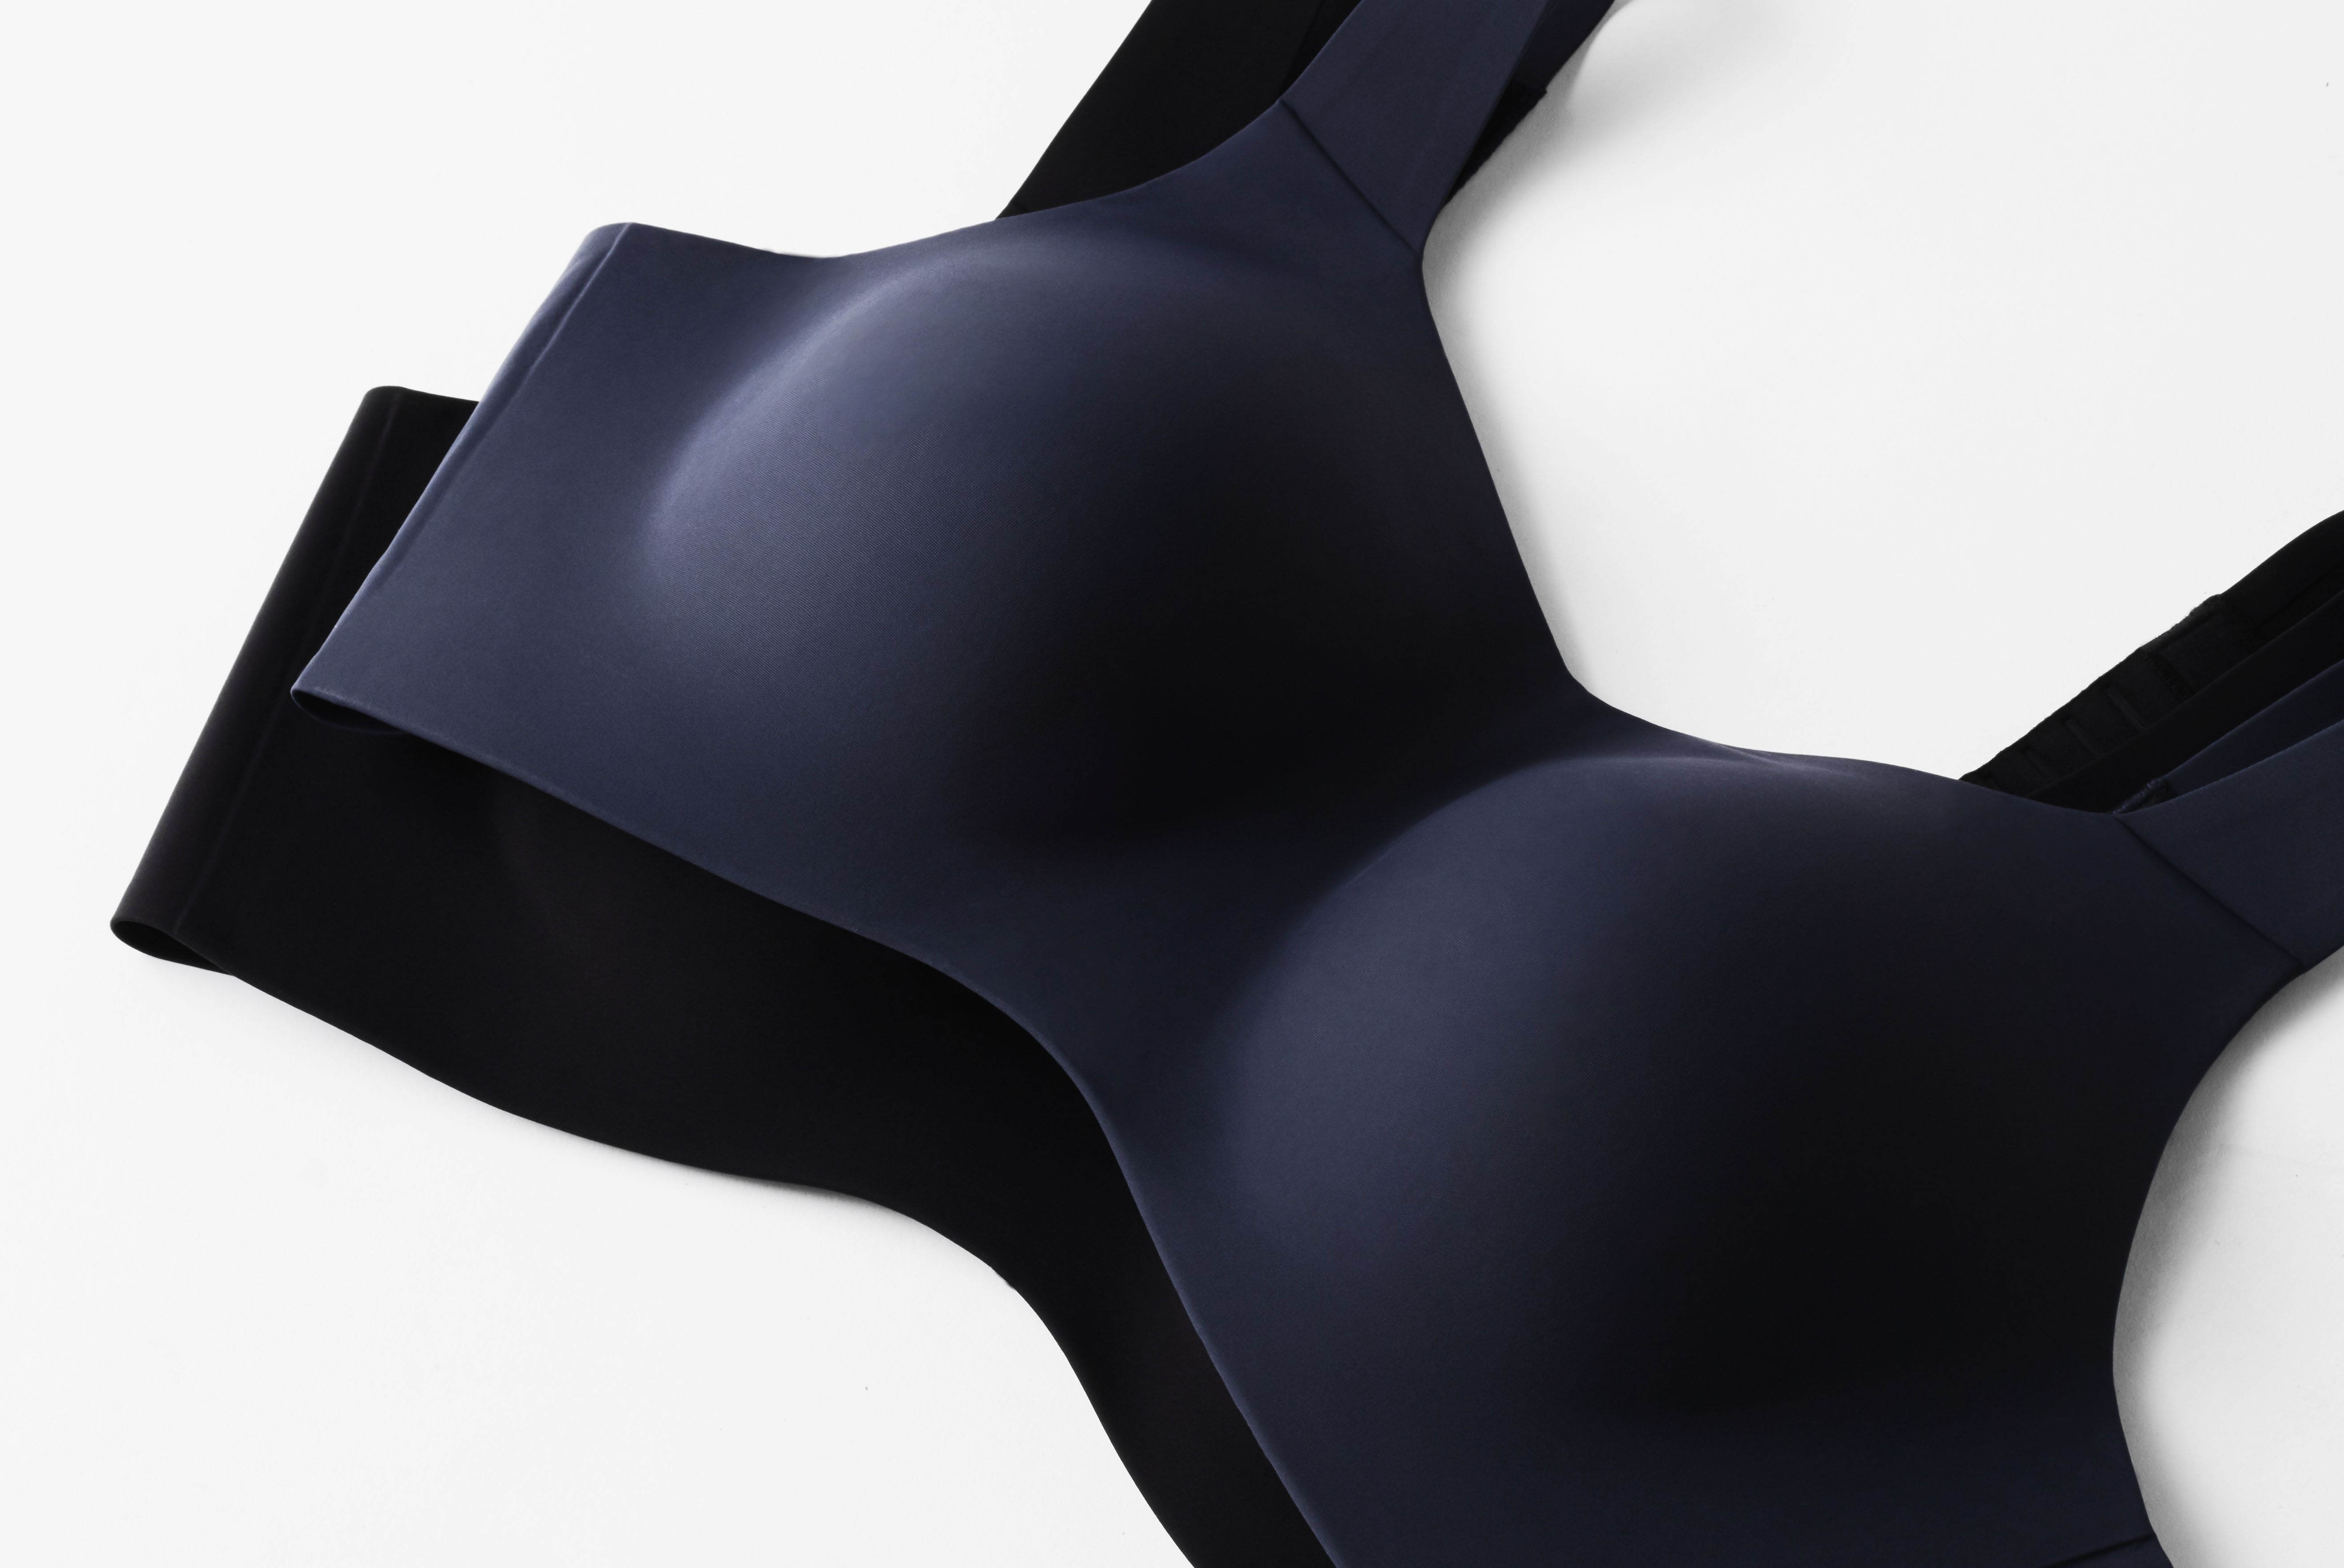 The Knix Catalyst Is the Sports Bra You've Been Waiting For